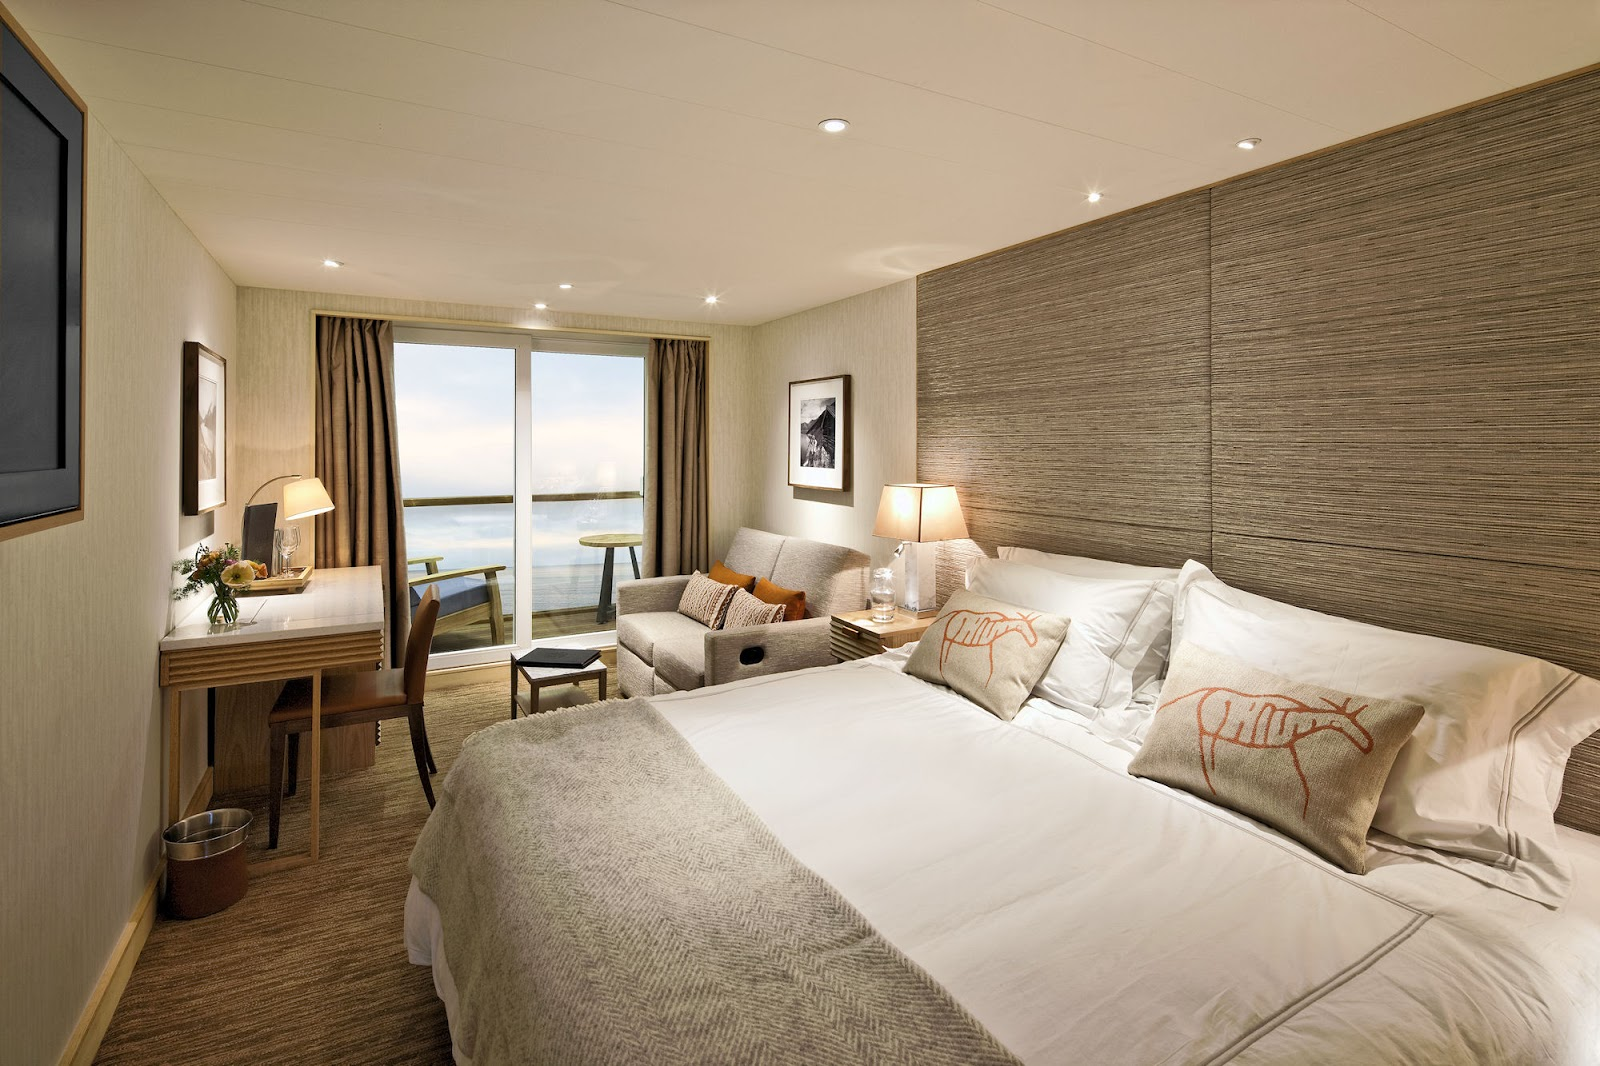 Deluxe Veranda Stateroom. Photo: ©Viking Cruises.